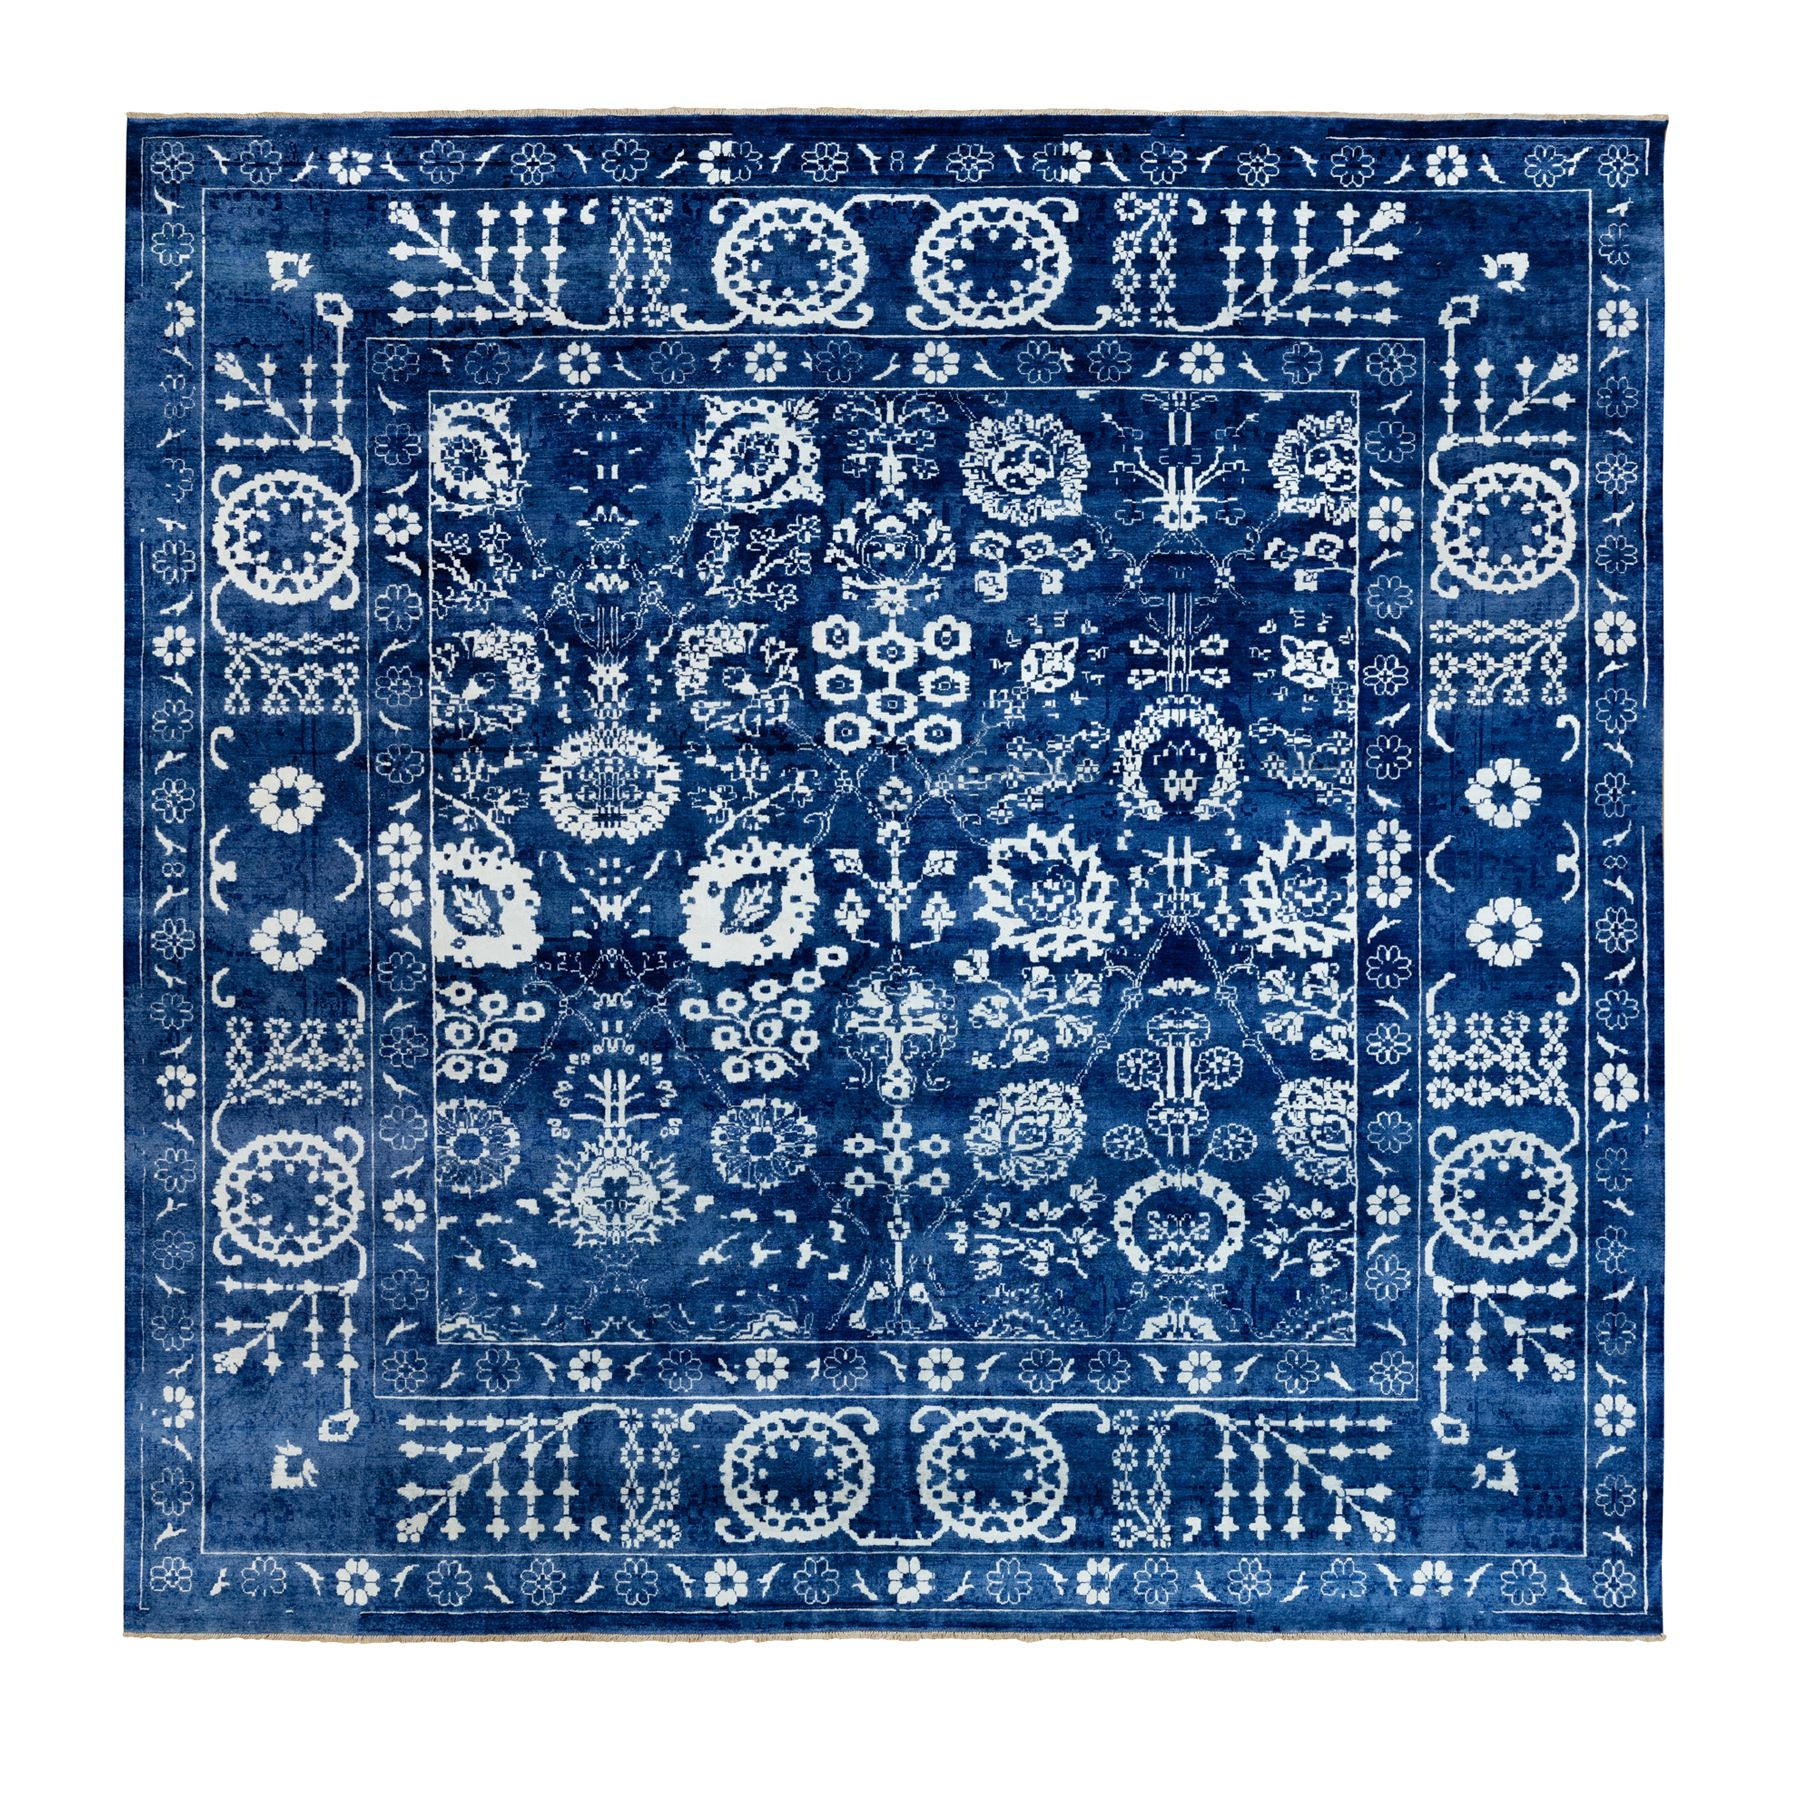 "12'2""x12'2"" Blue Tone On Tone Tabriz Wool and Silk Square Hand Knotted Oriental Rug"